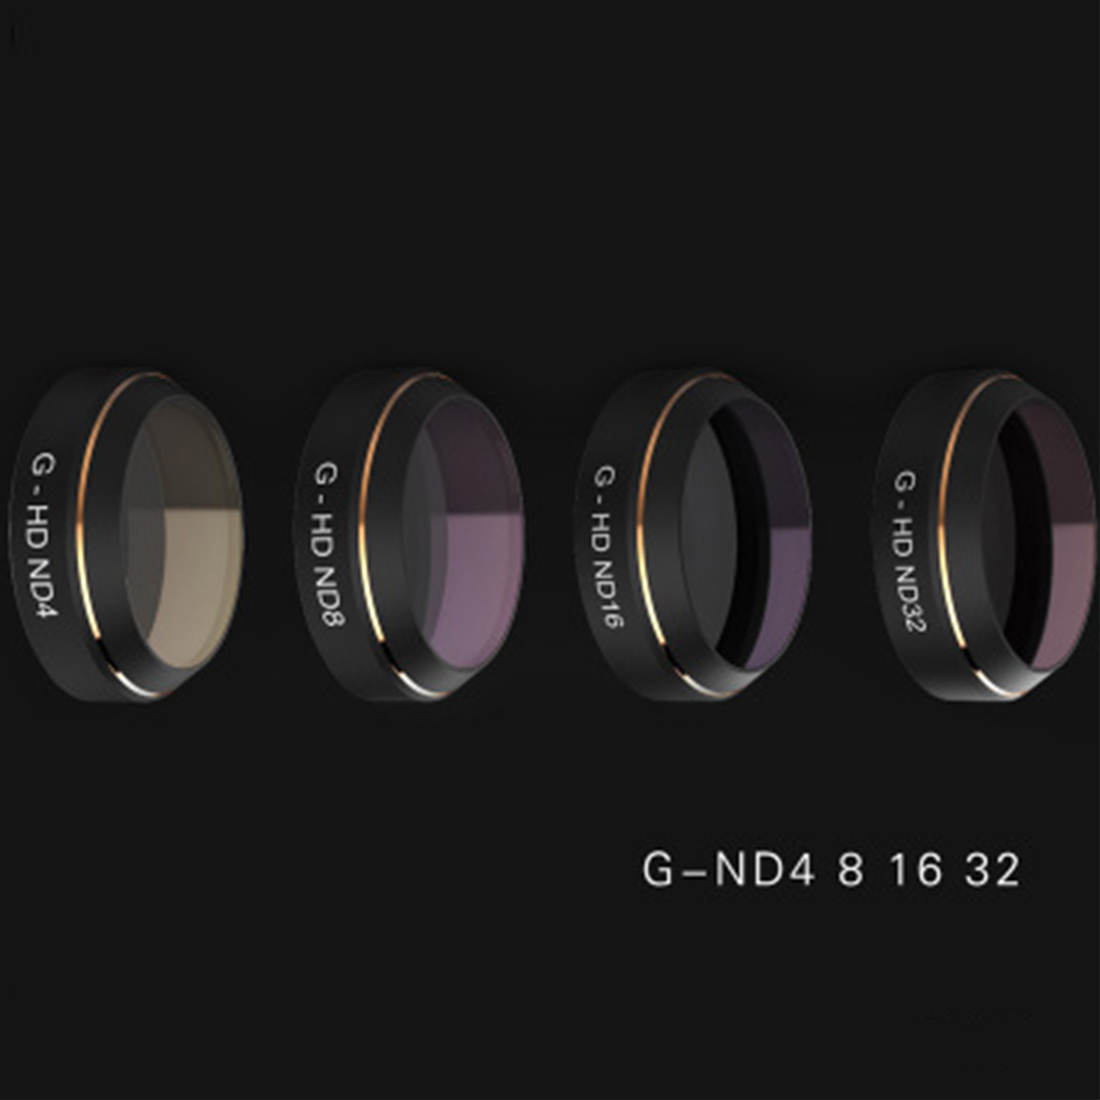 PGYTECH ND4 ND8 ND16 ND32  Gimbal Lens Filter Set Accessories for DJI Mavic Pro Drone  Quadcopter Parts full specialized dye ink ciss for eposn t1711 t1701 for epson xp 313 xp 413 xp 103 xp 203 xp 207 xp 303 xp 306 xp 403 xp 406